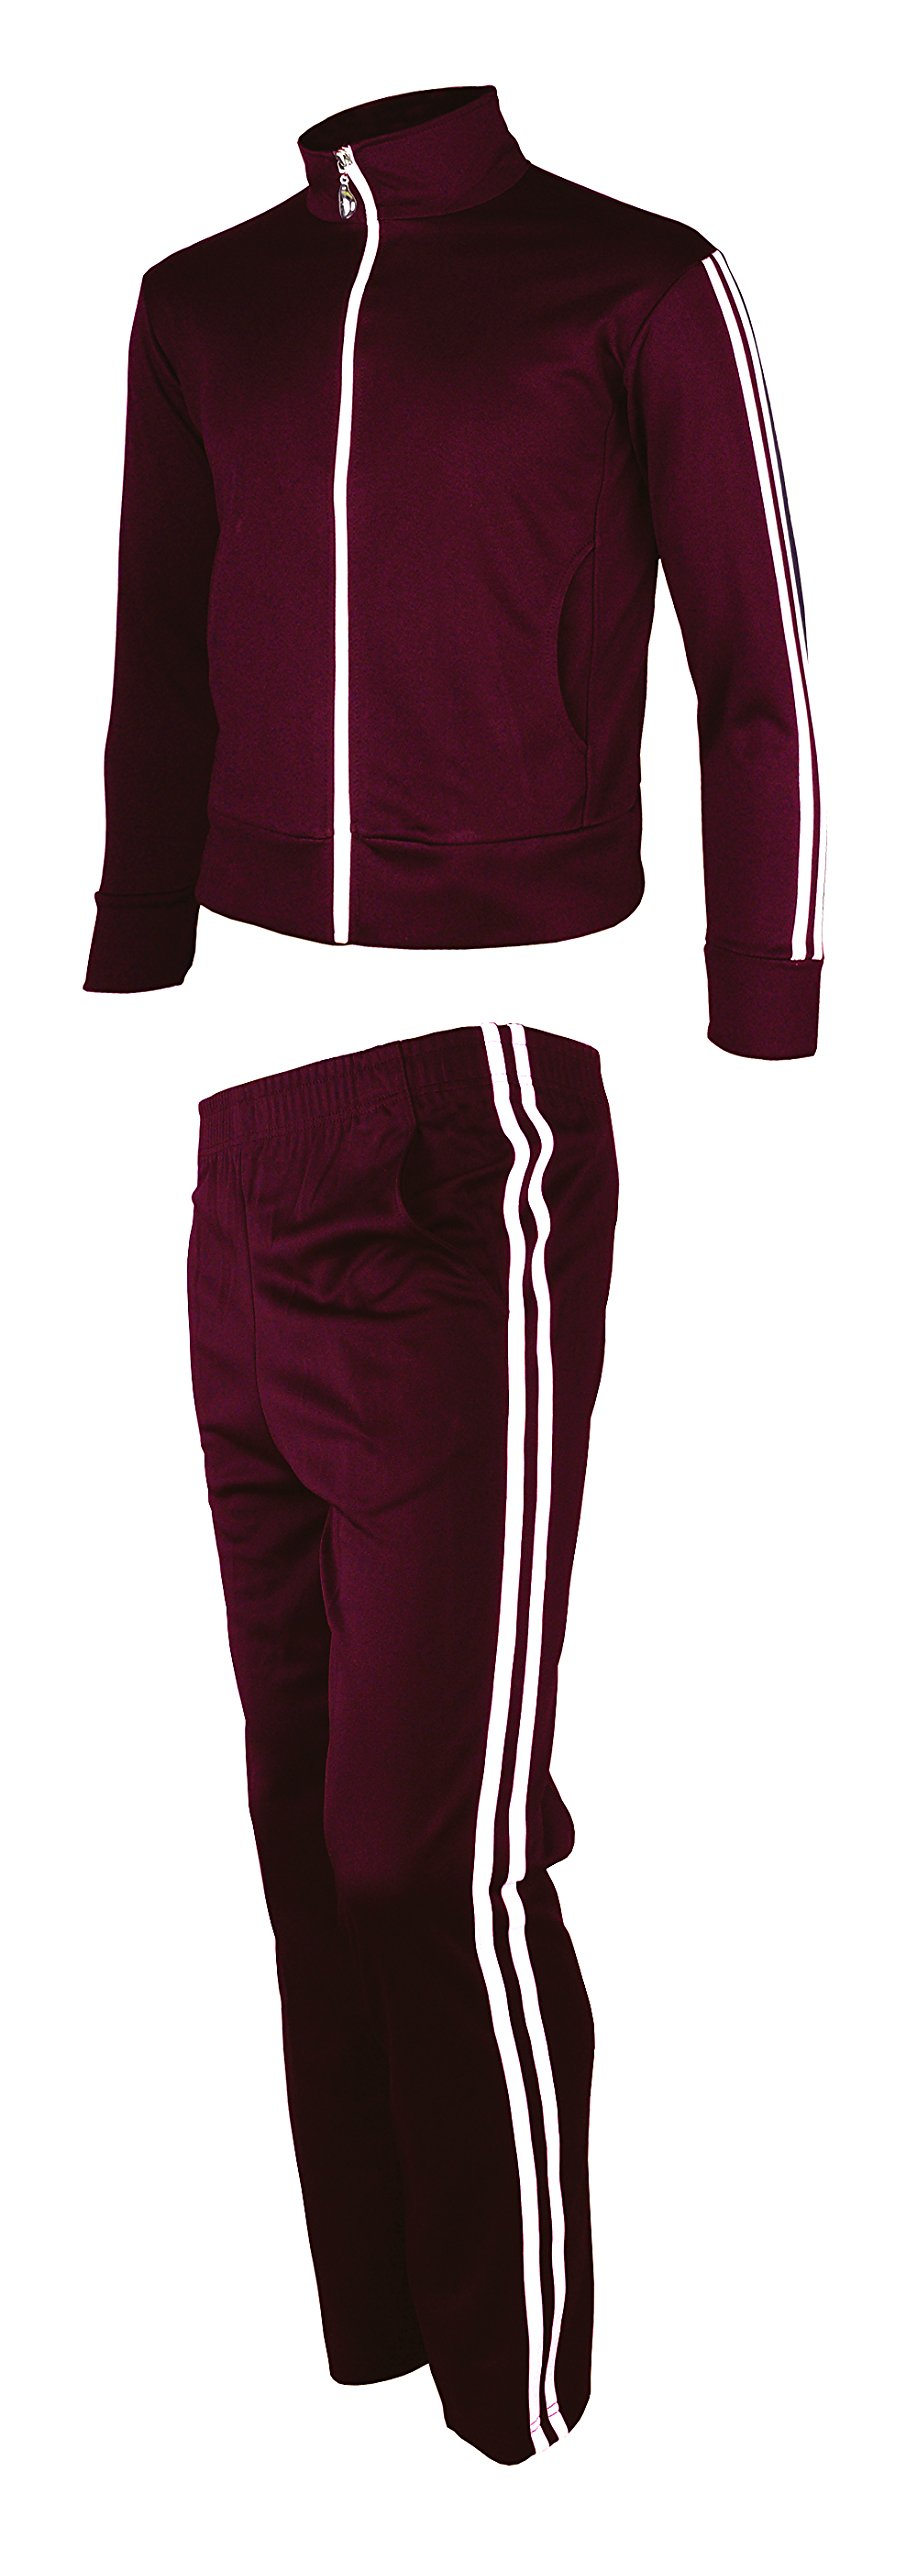 myglory77mall Men's Running Jogging Track Suit Jacket and Pants Warm up Pants Gym Training Wear M US(XL Asian Tag) Wine